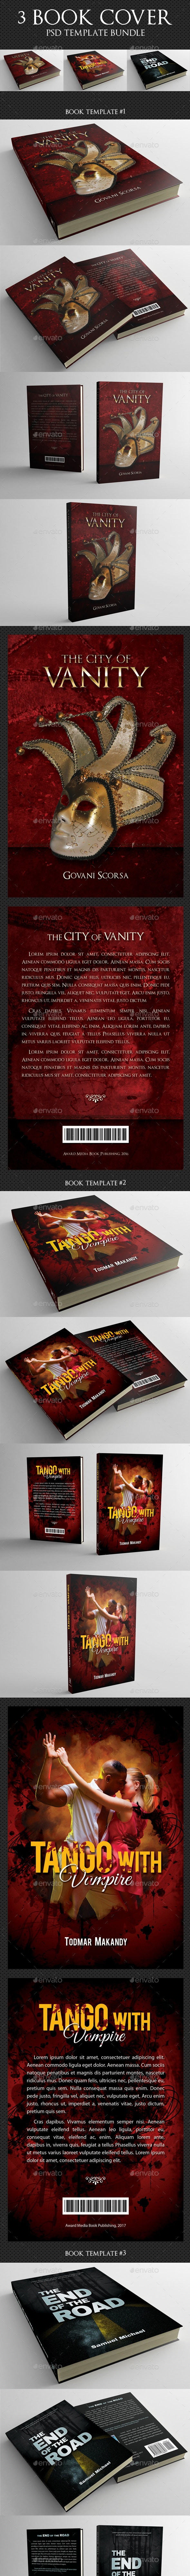 3 in 1 Book Cover Template Bundle 04